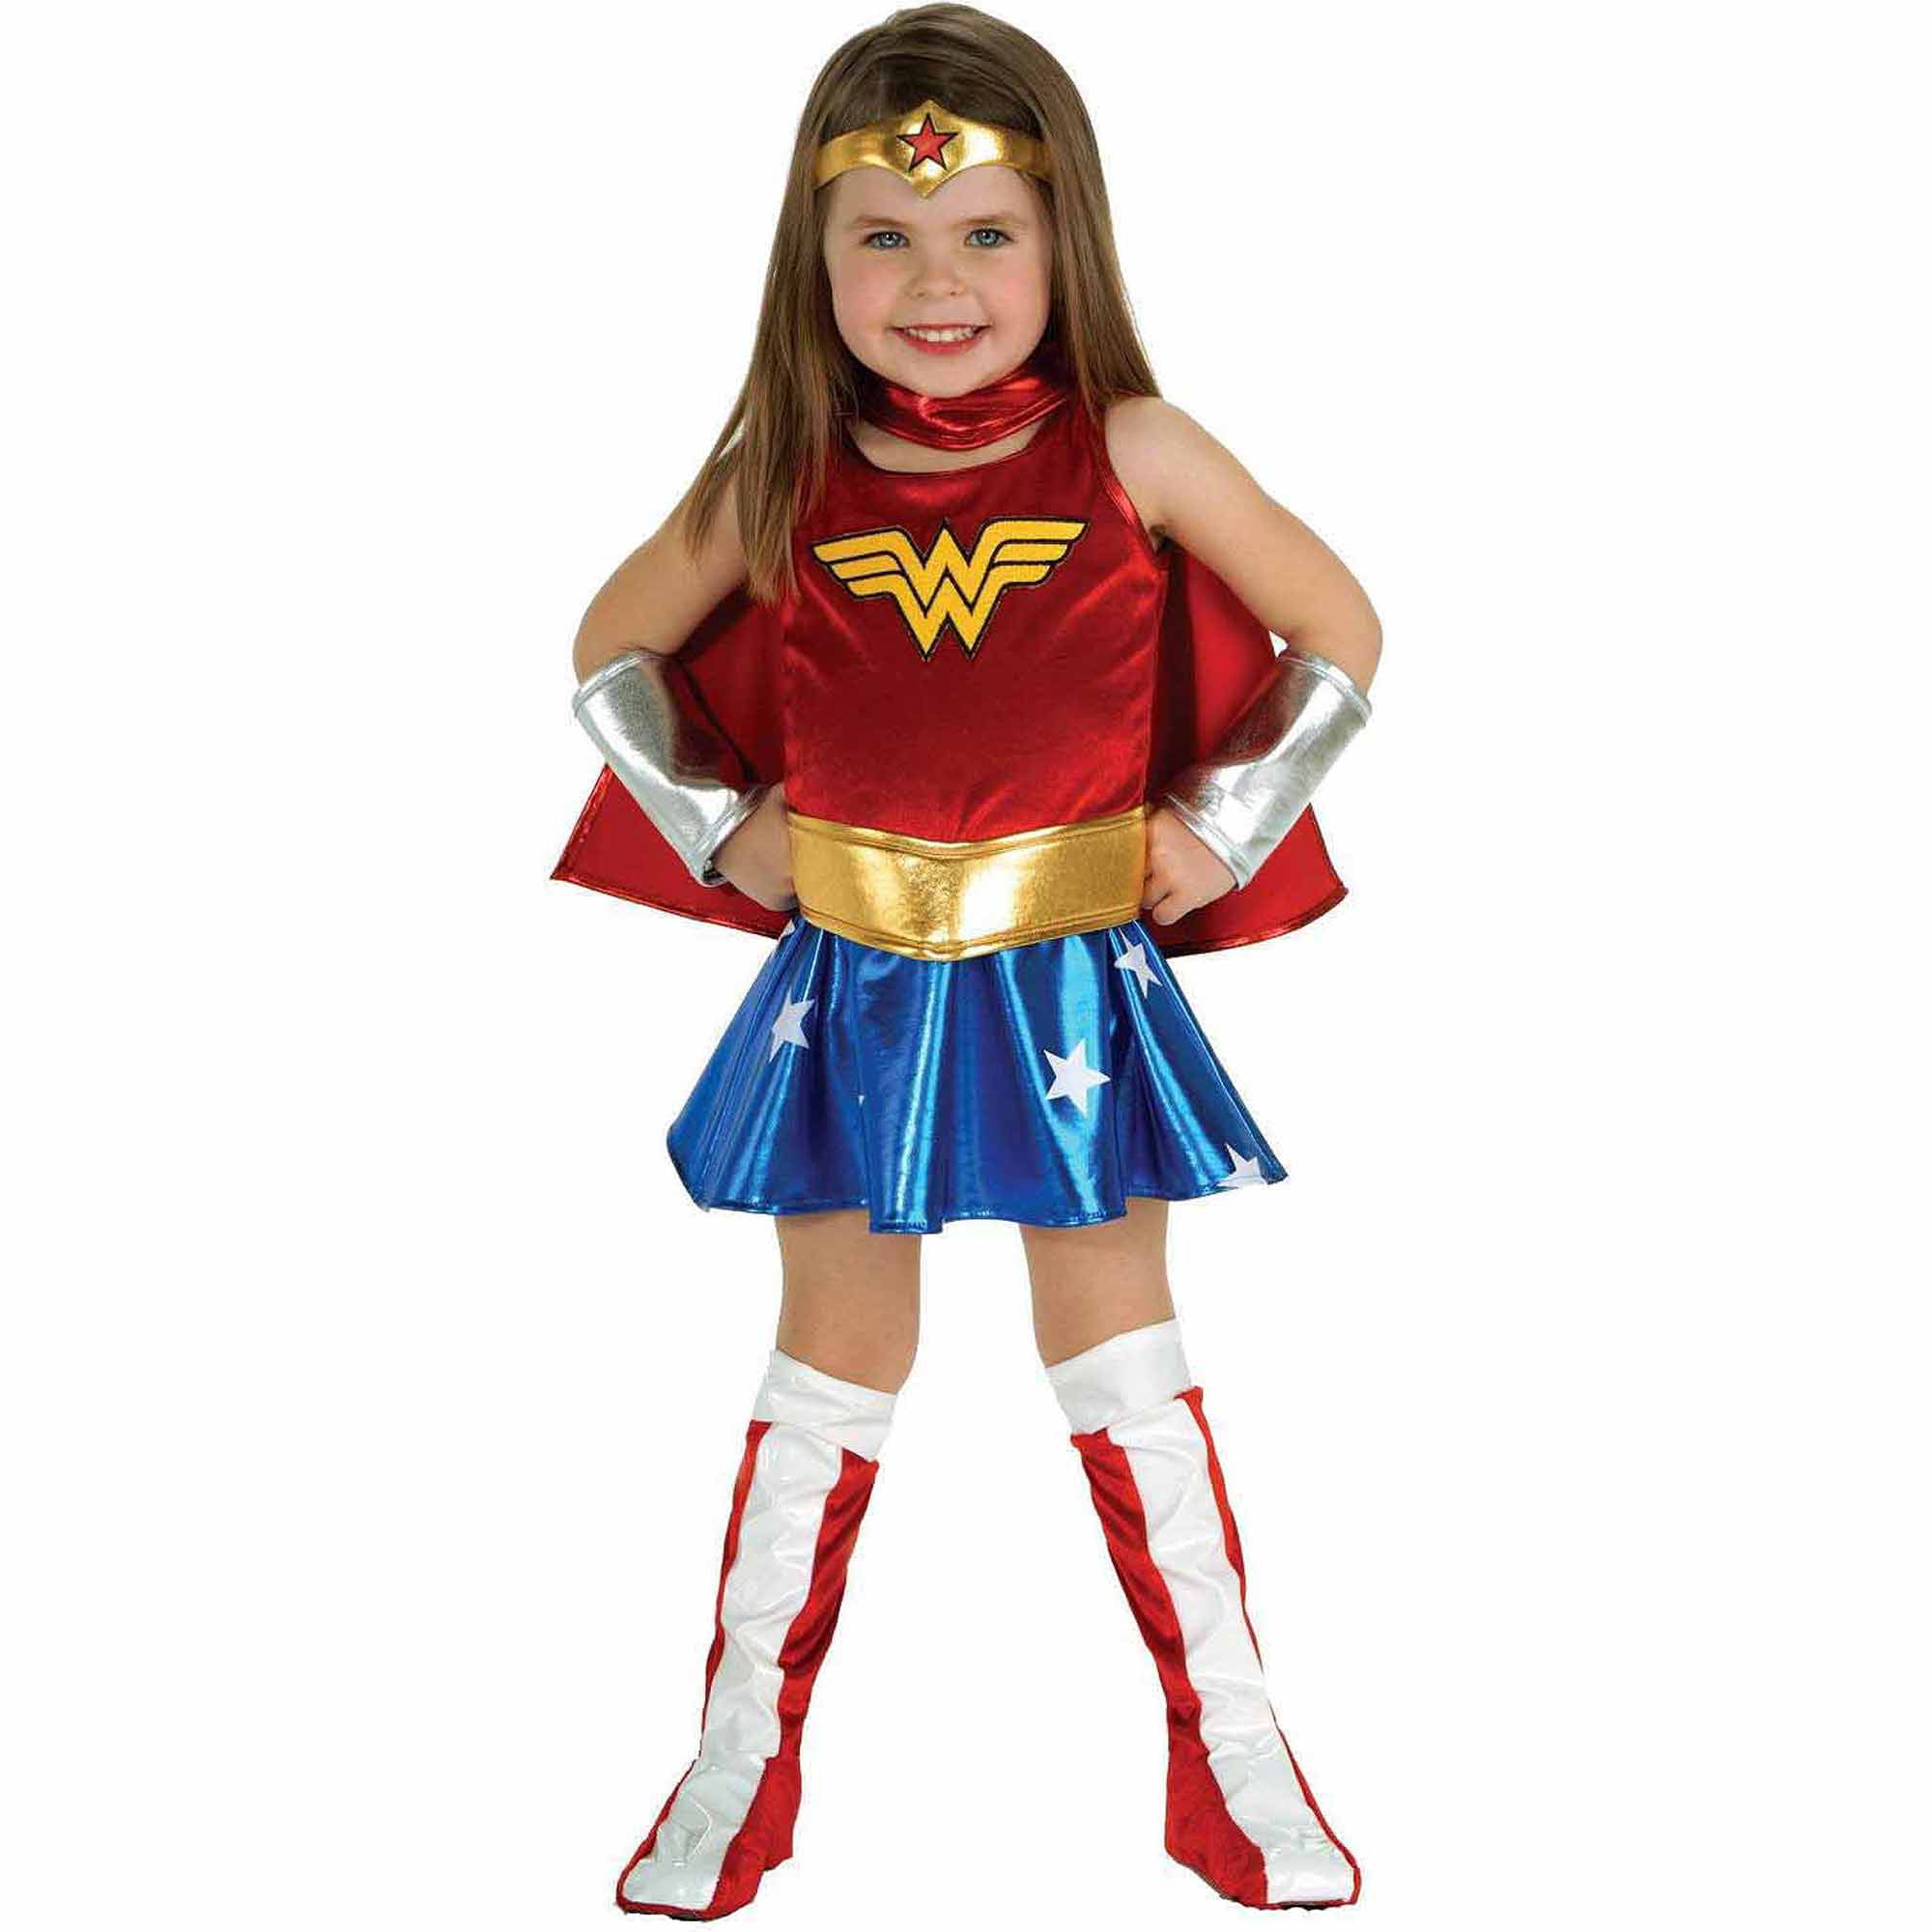 Wonder Woman Toddler Size 3T-4T Halloween Costume Kids -1327